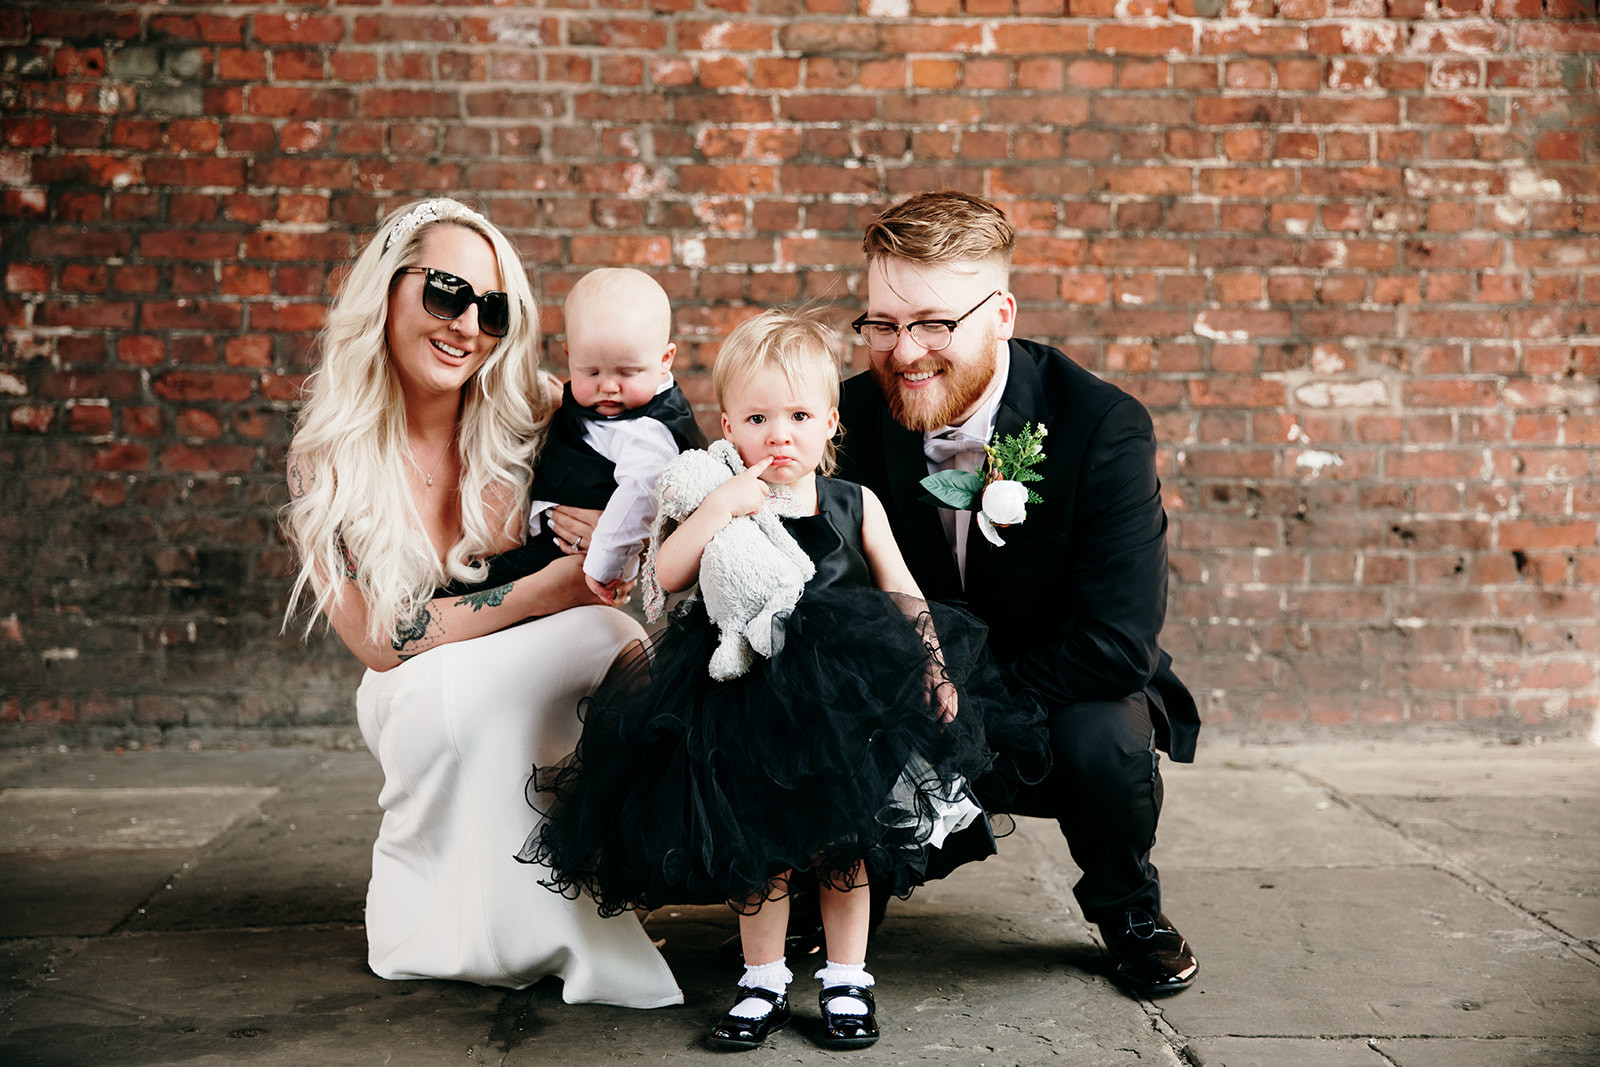 family wedding photo at castlefield, manchester